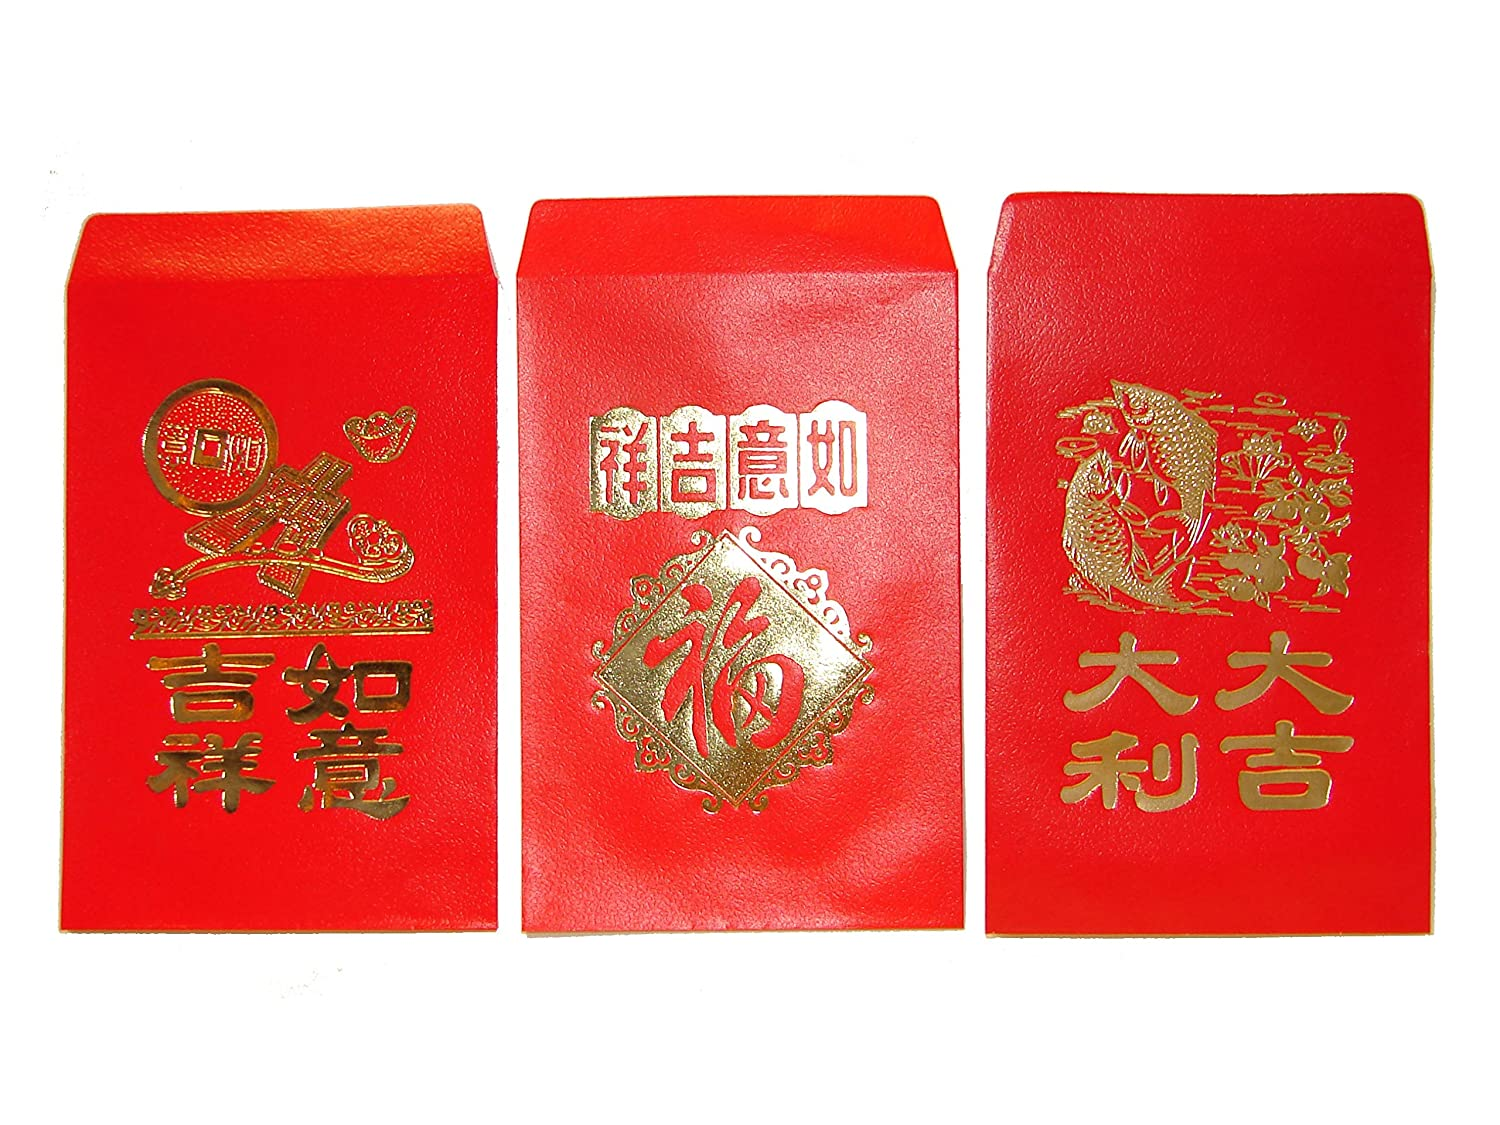 amazoncom chinese red envelopes pack of 50 in 3 designs chinese funeral envelopes office products - Chinese New Year Red Envelope